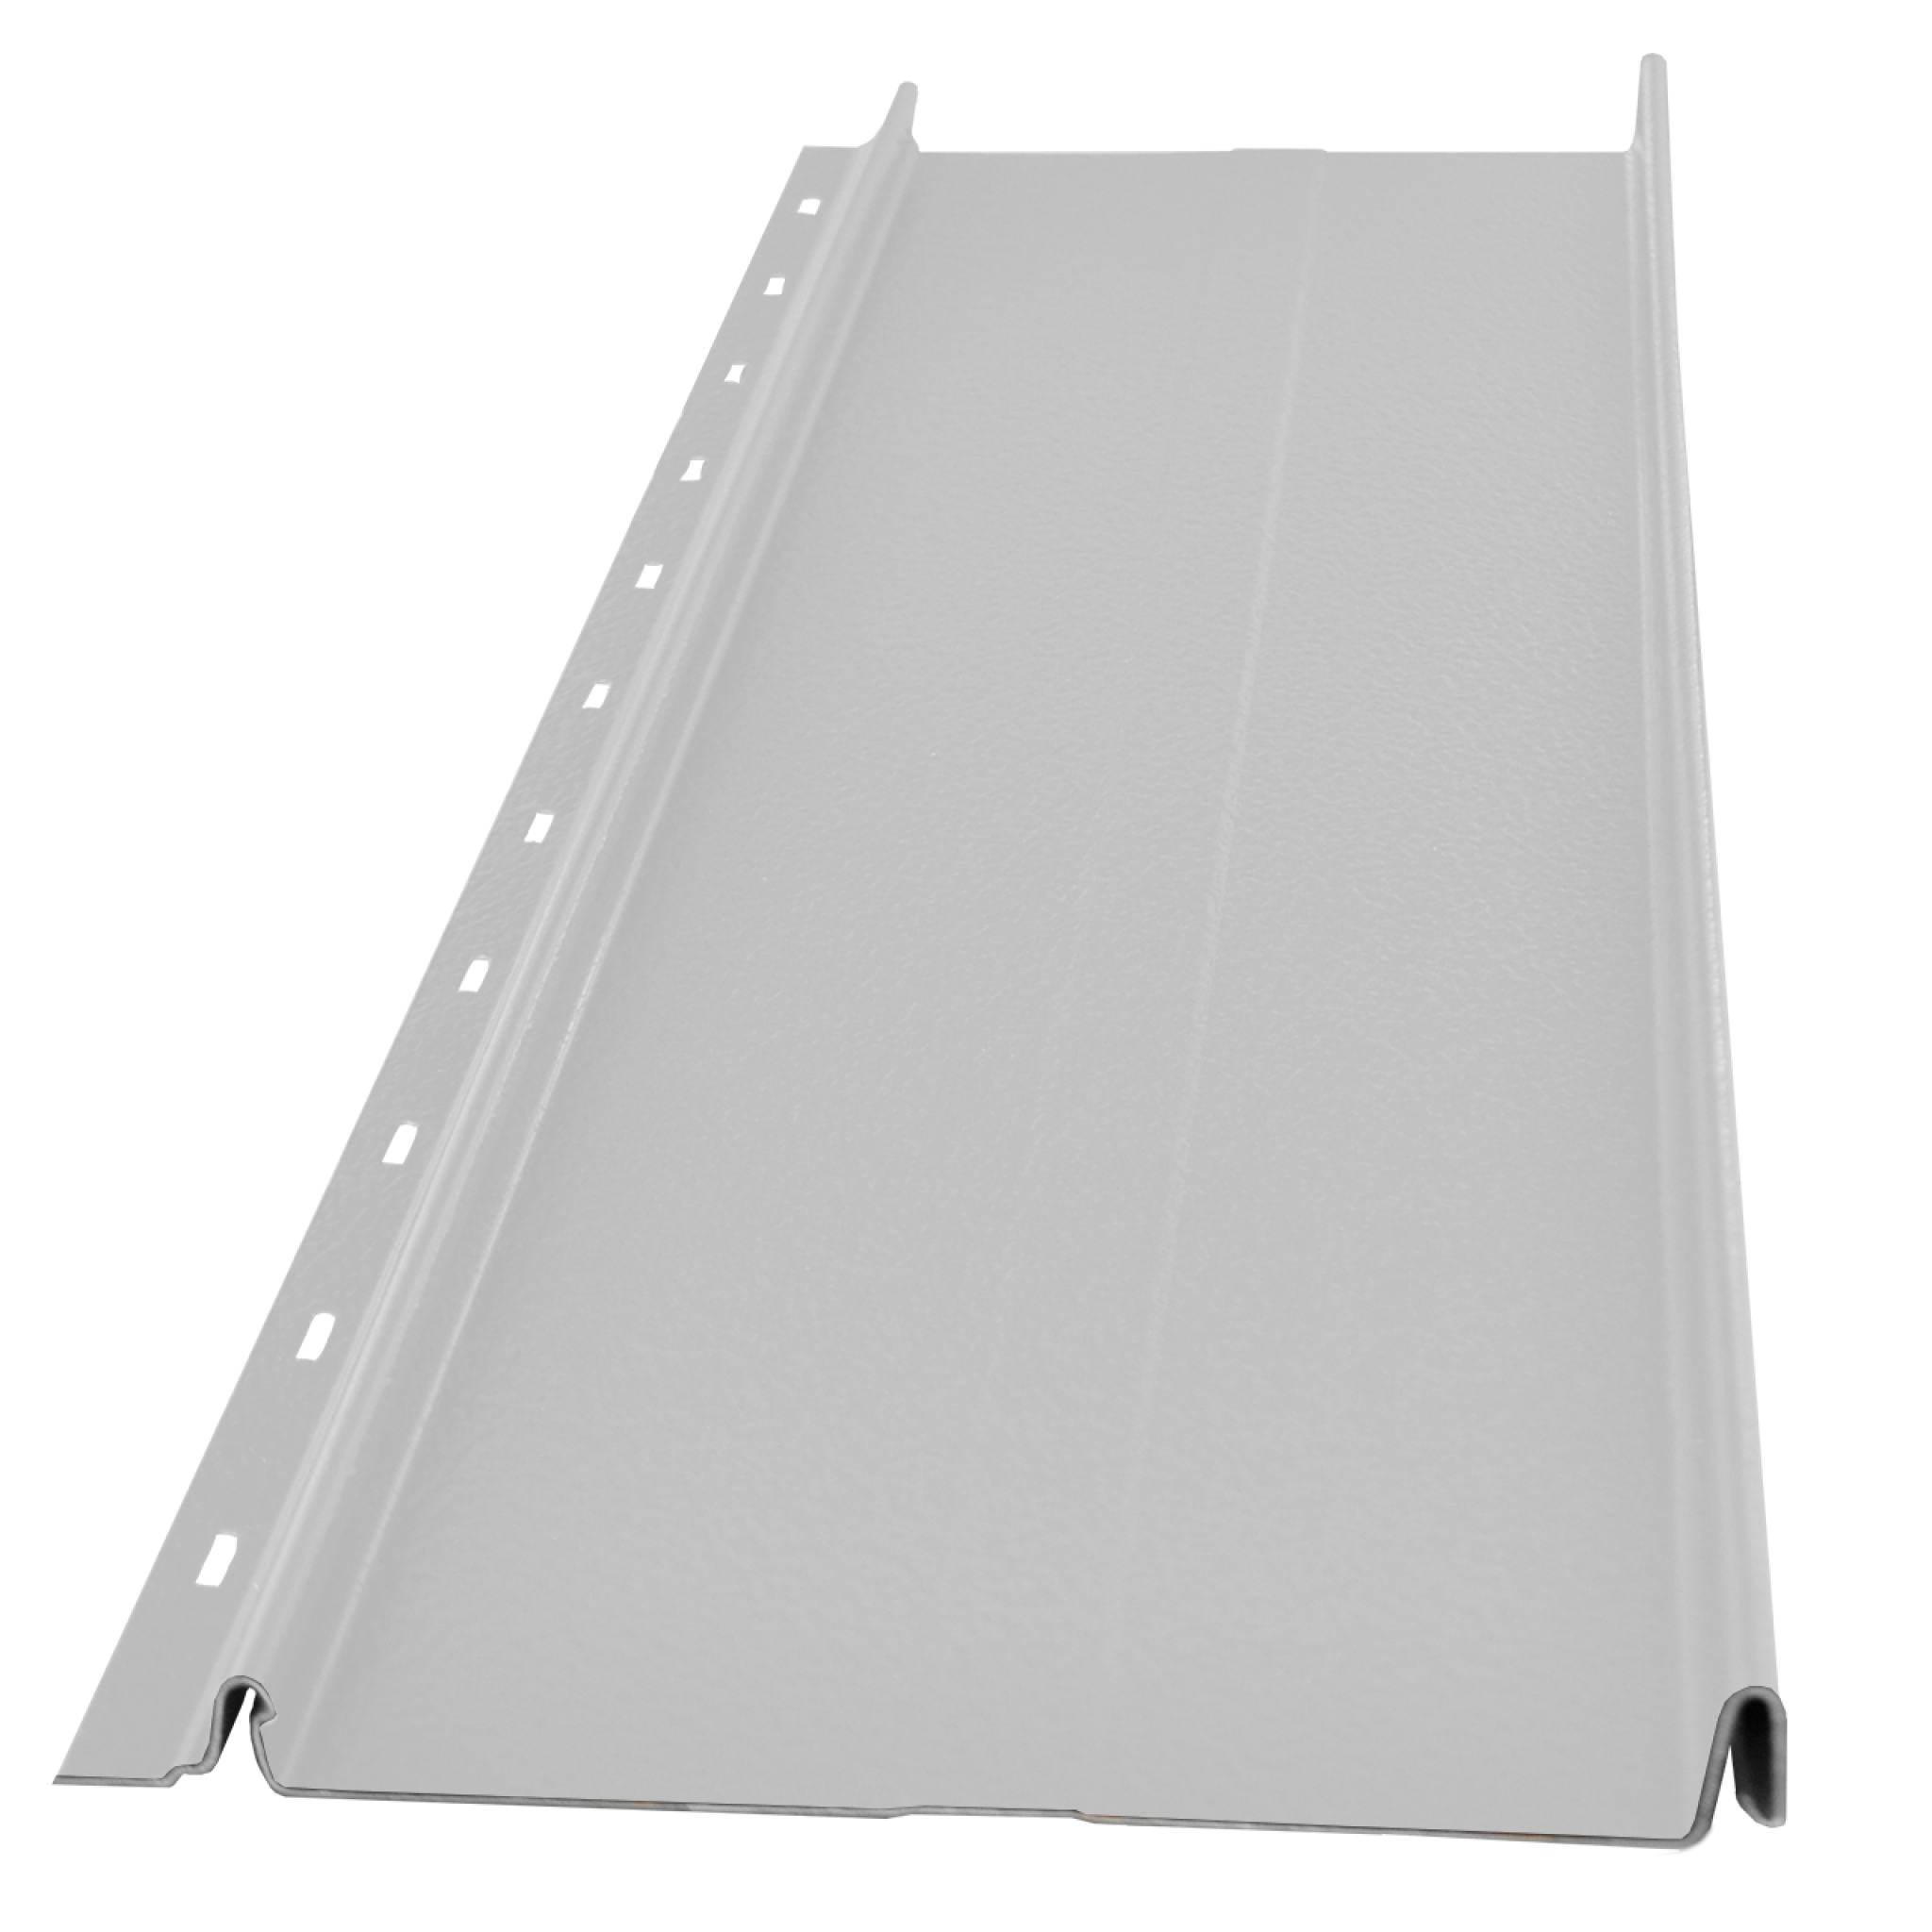 Snap-On 7.5 Steel Roofing - Polar